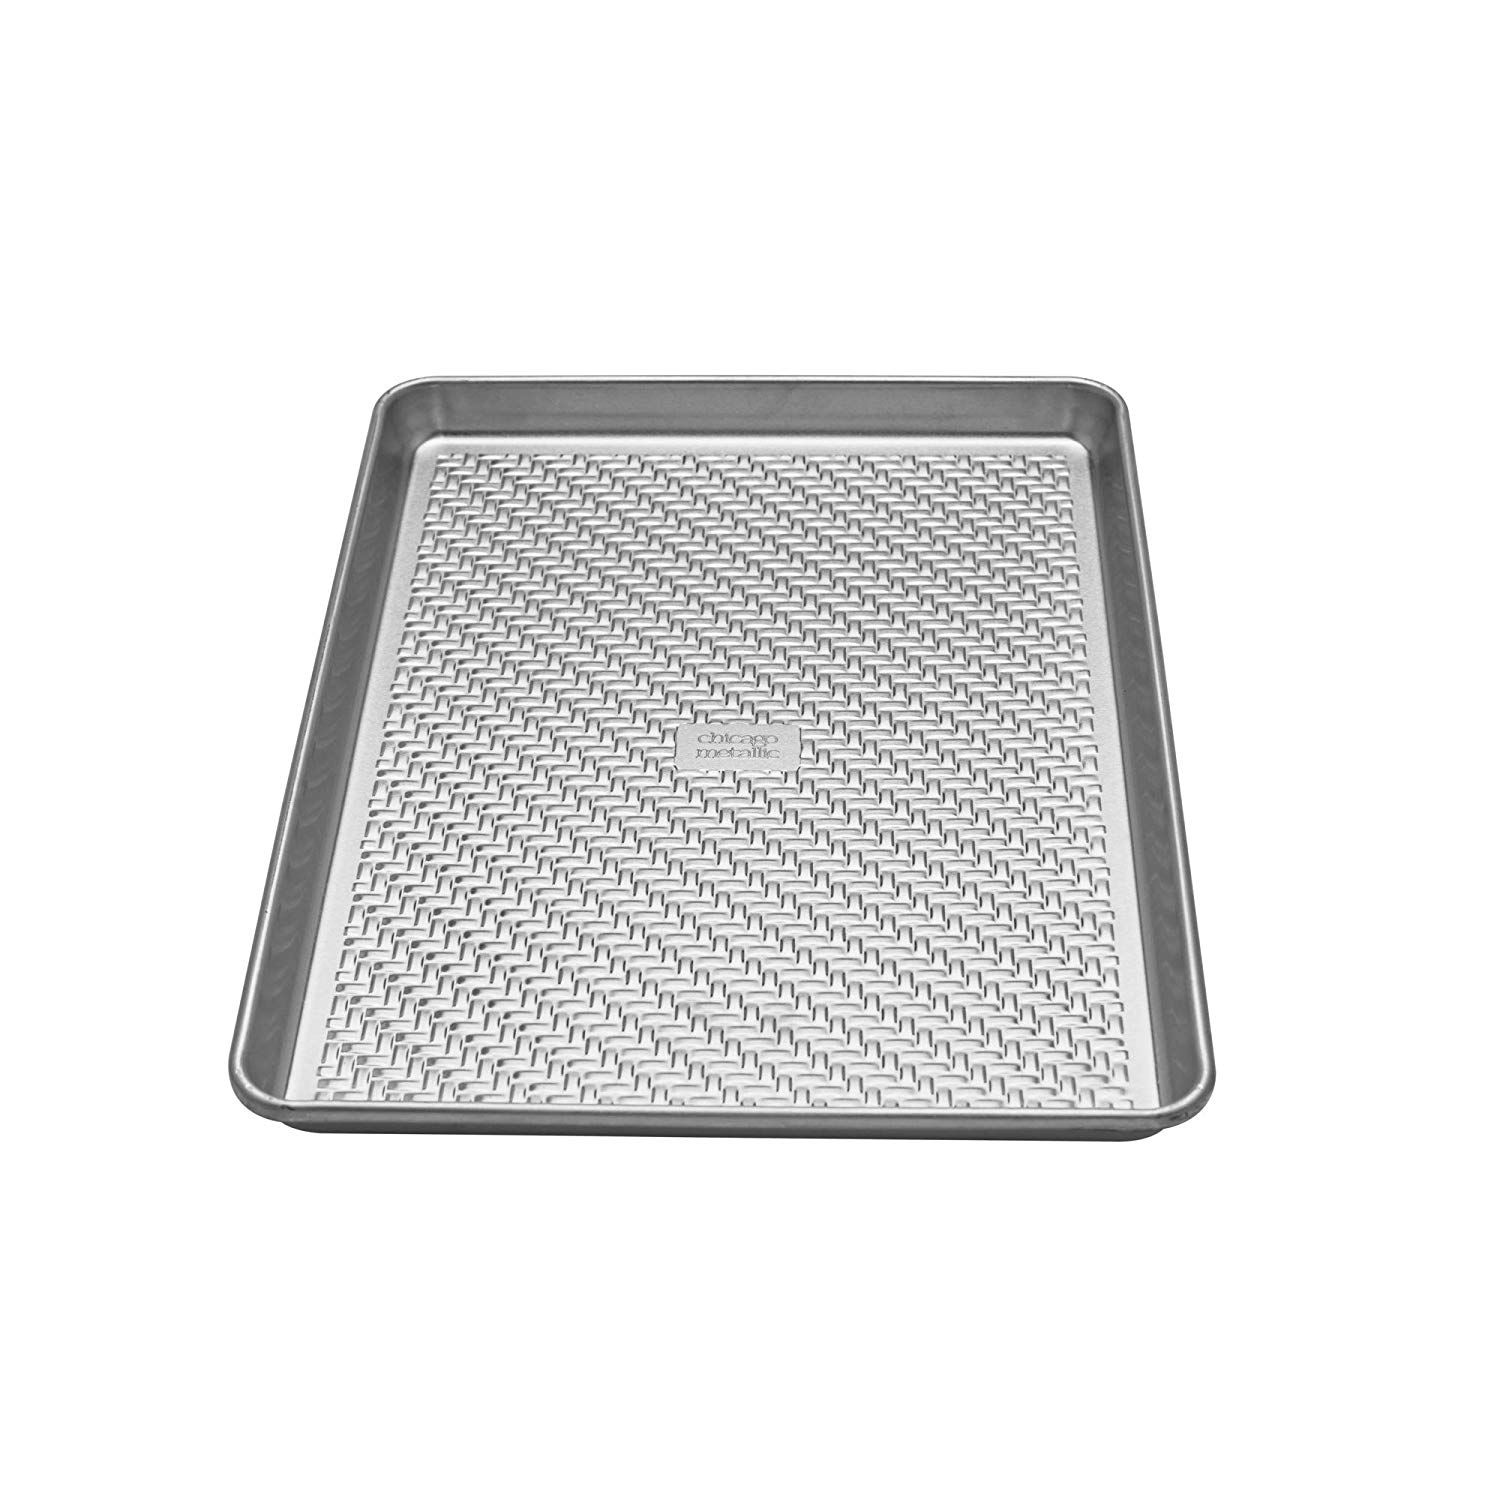 Chicago Metallic 5237968 Uncoated Textured Aluminum Medium Cookie Baking Sheet 10 Inch By 15 Inch Silver Chicago Metallic Aluminum Bakeware Cake Baking Pans